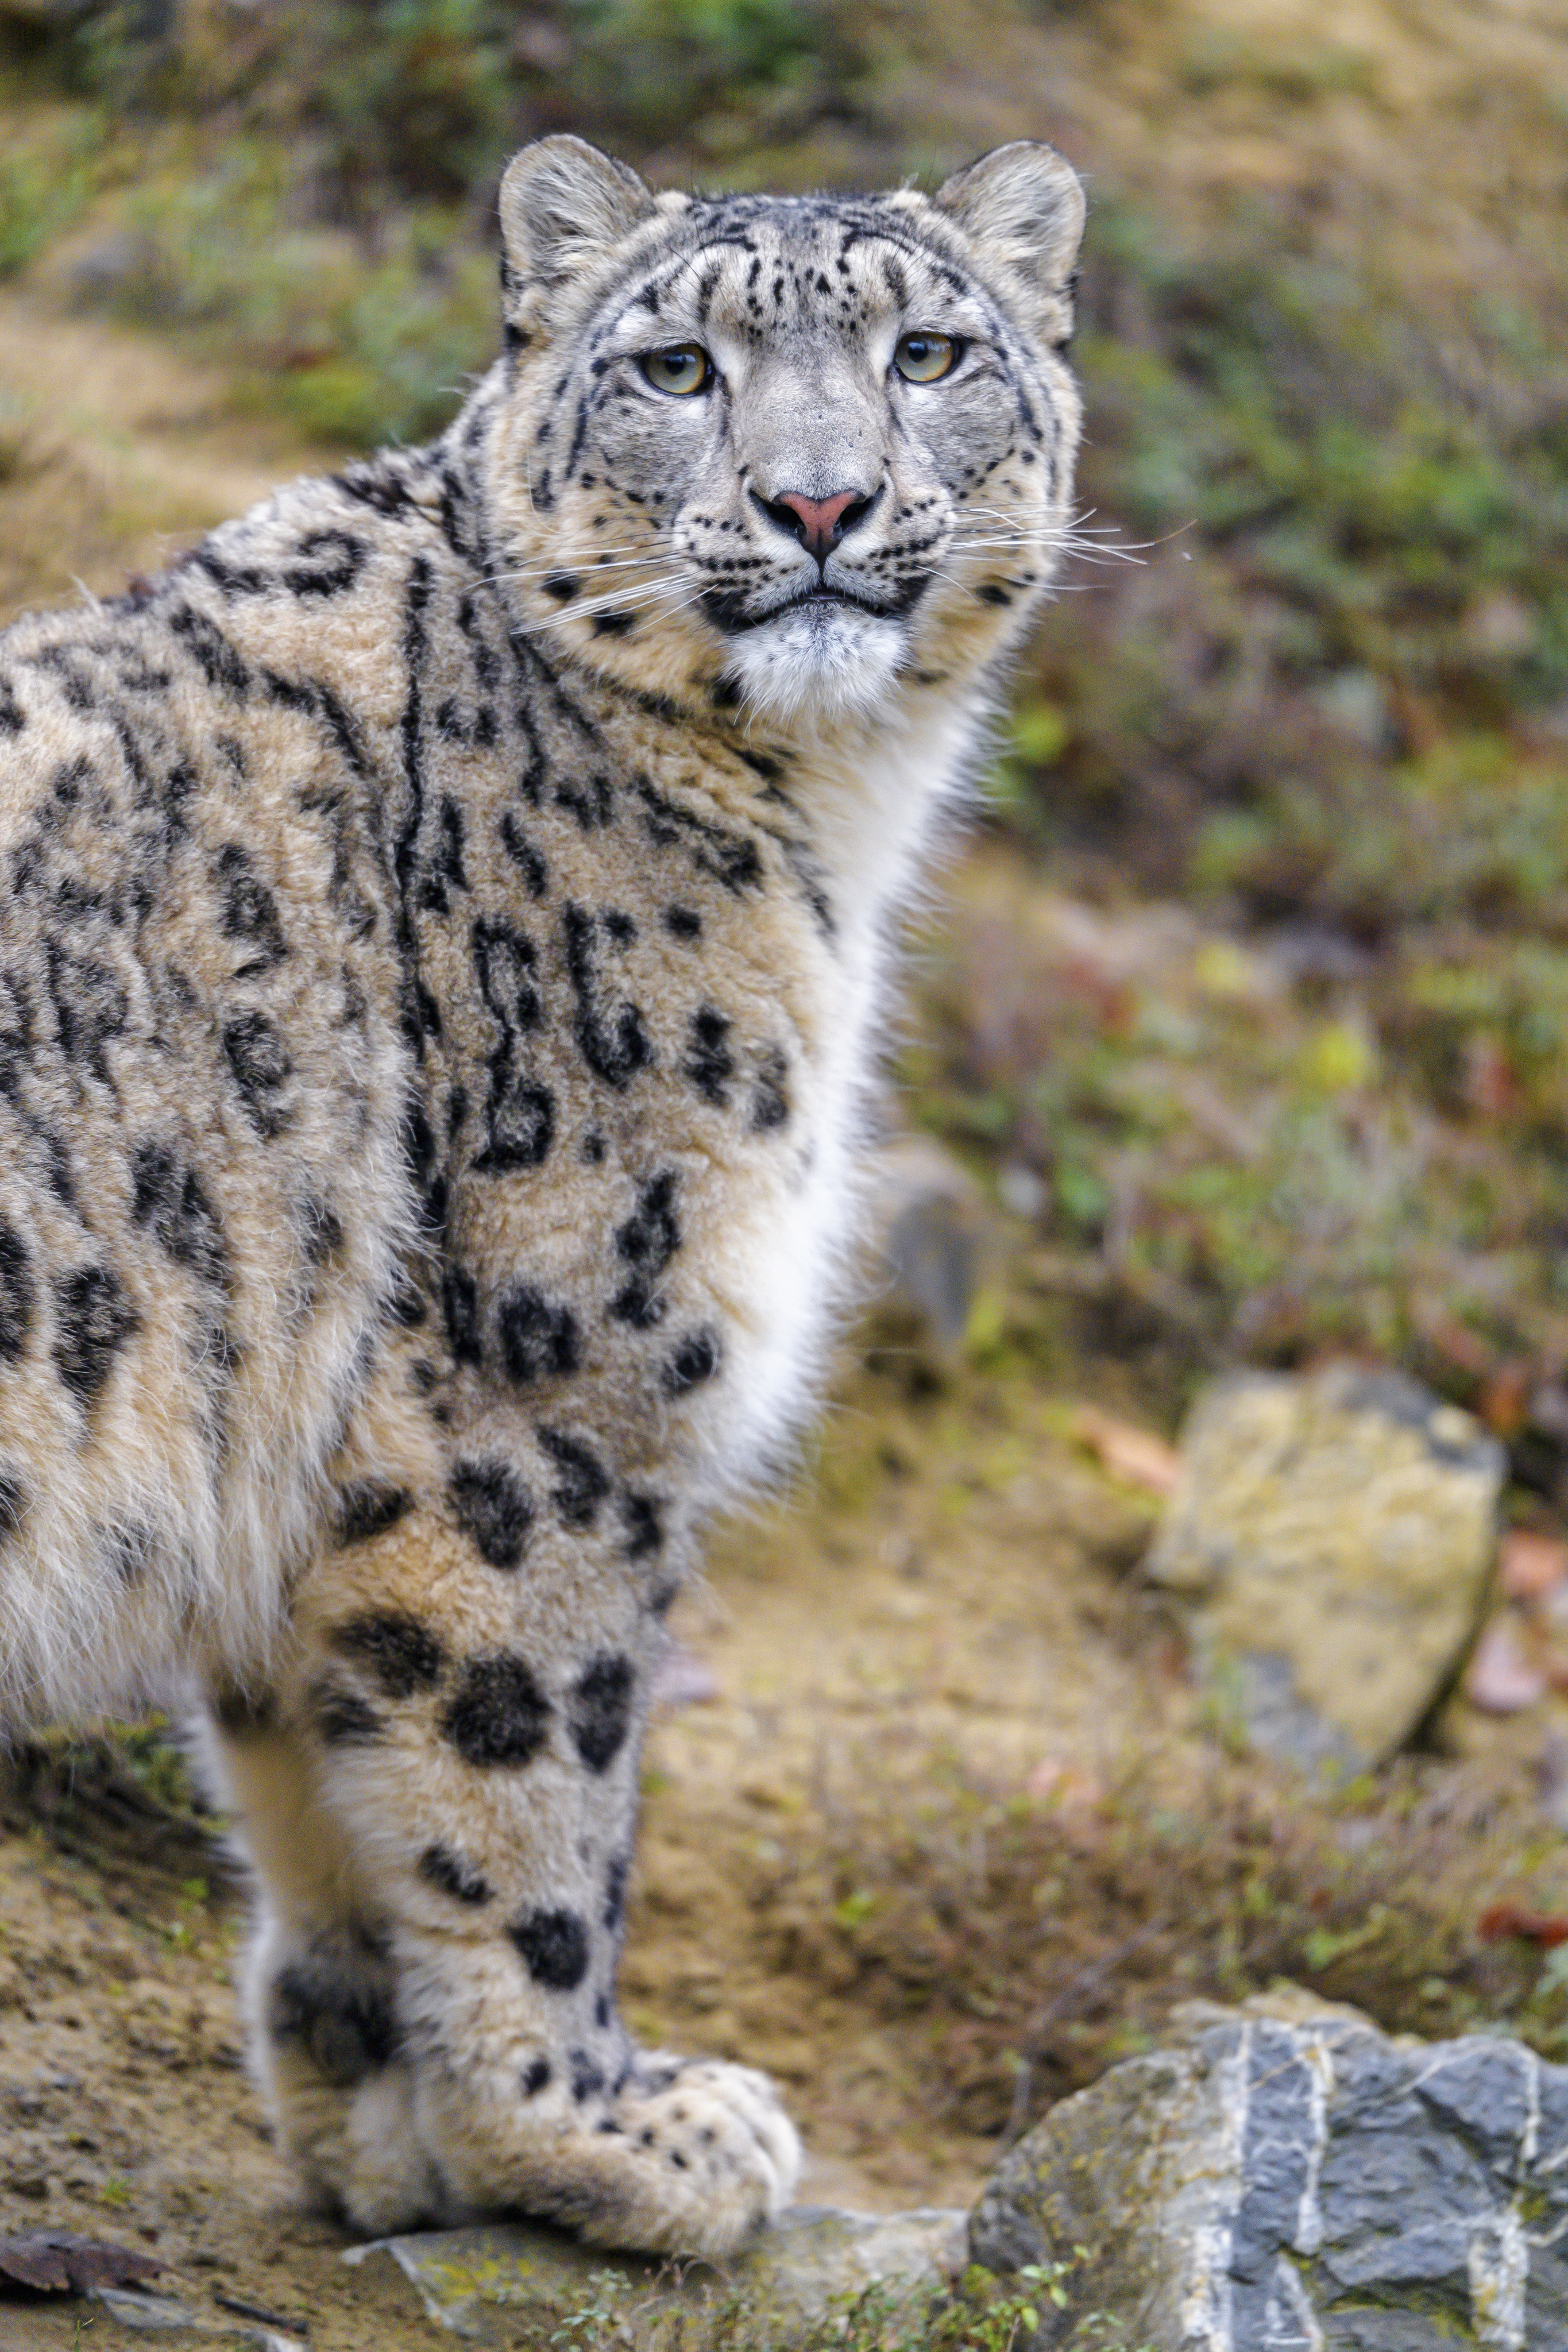 123251 download wallpaper Animals, Animal, Predator, Wild, Sight, Opinion, Snow Leopard screensavers and pictures for free